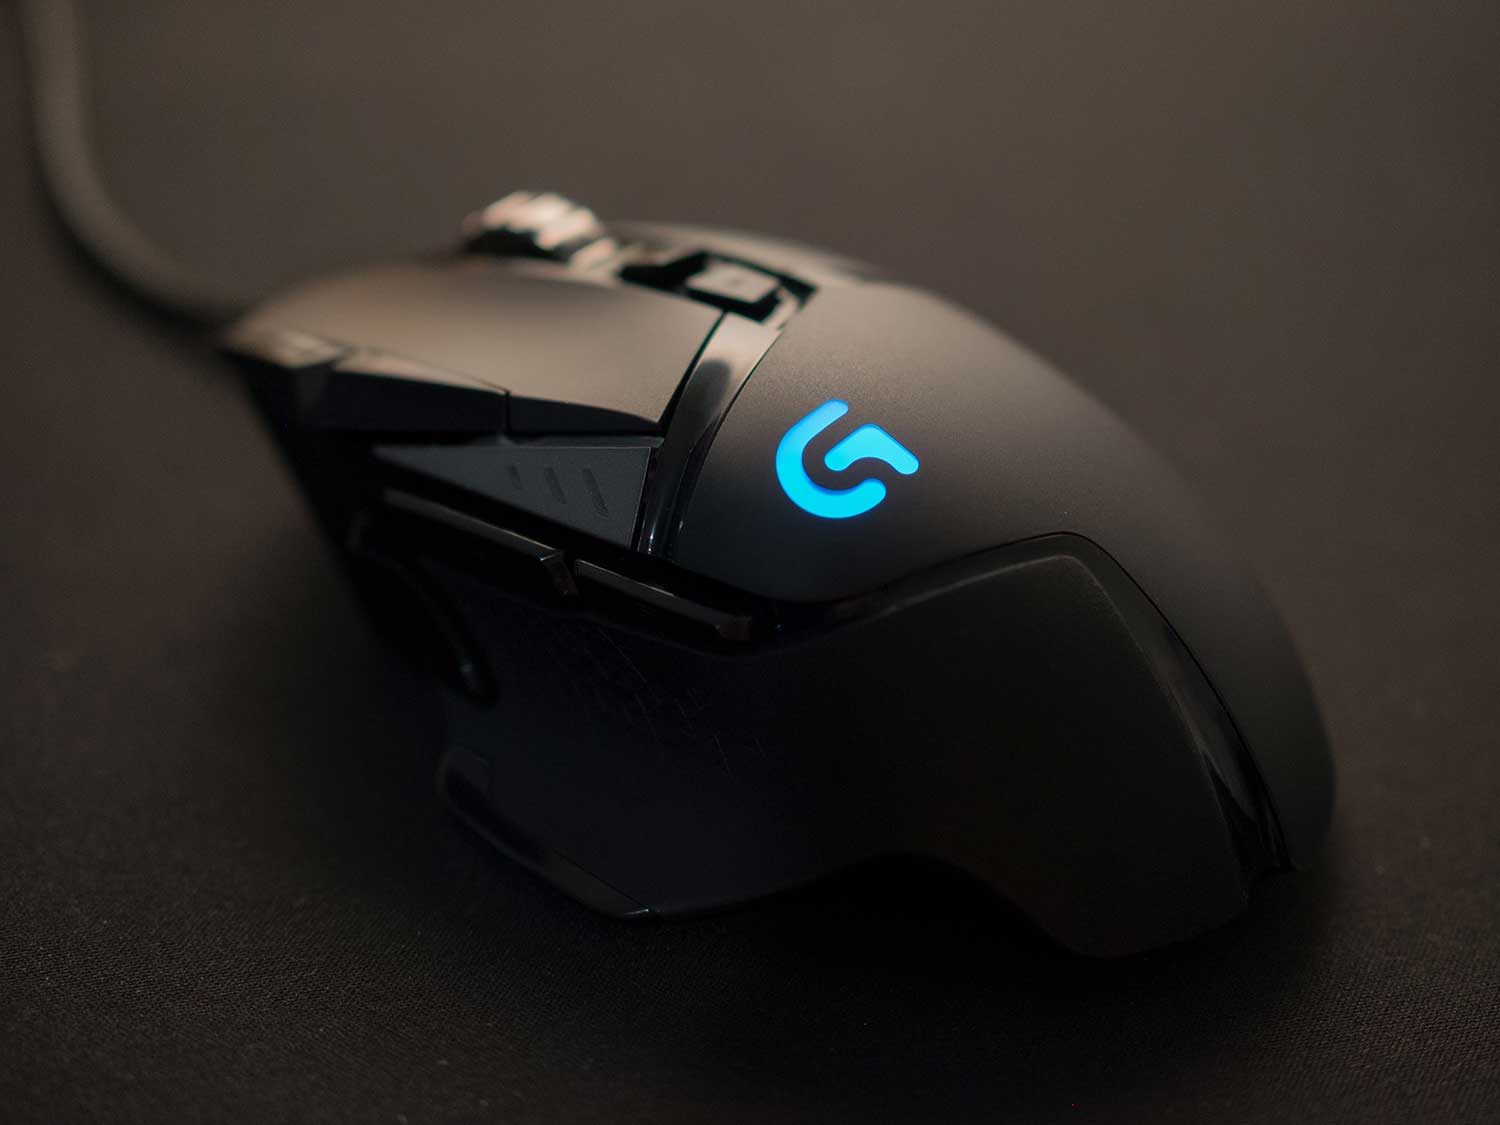 Programmable computer gaming mouse